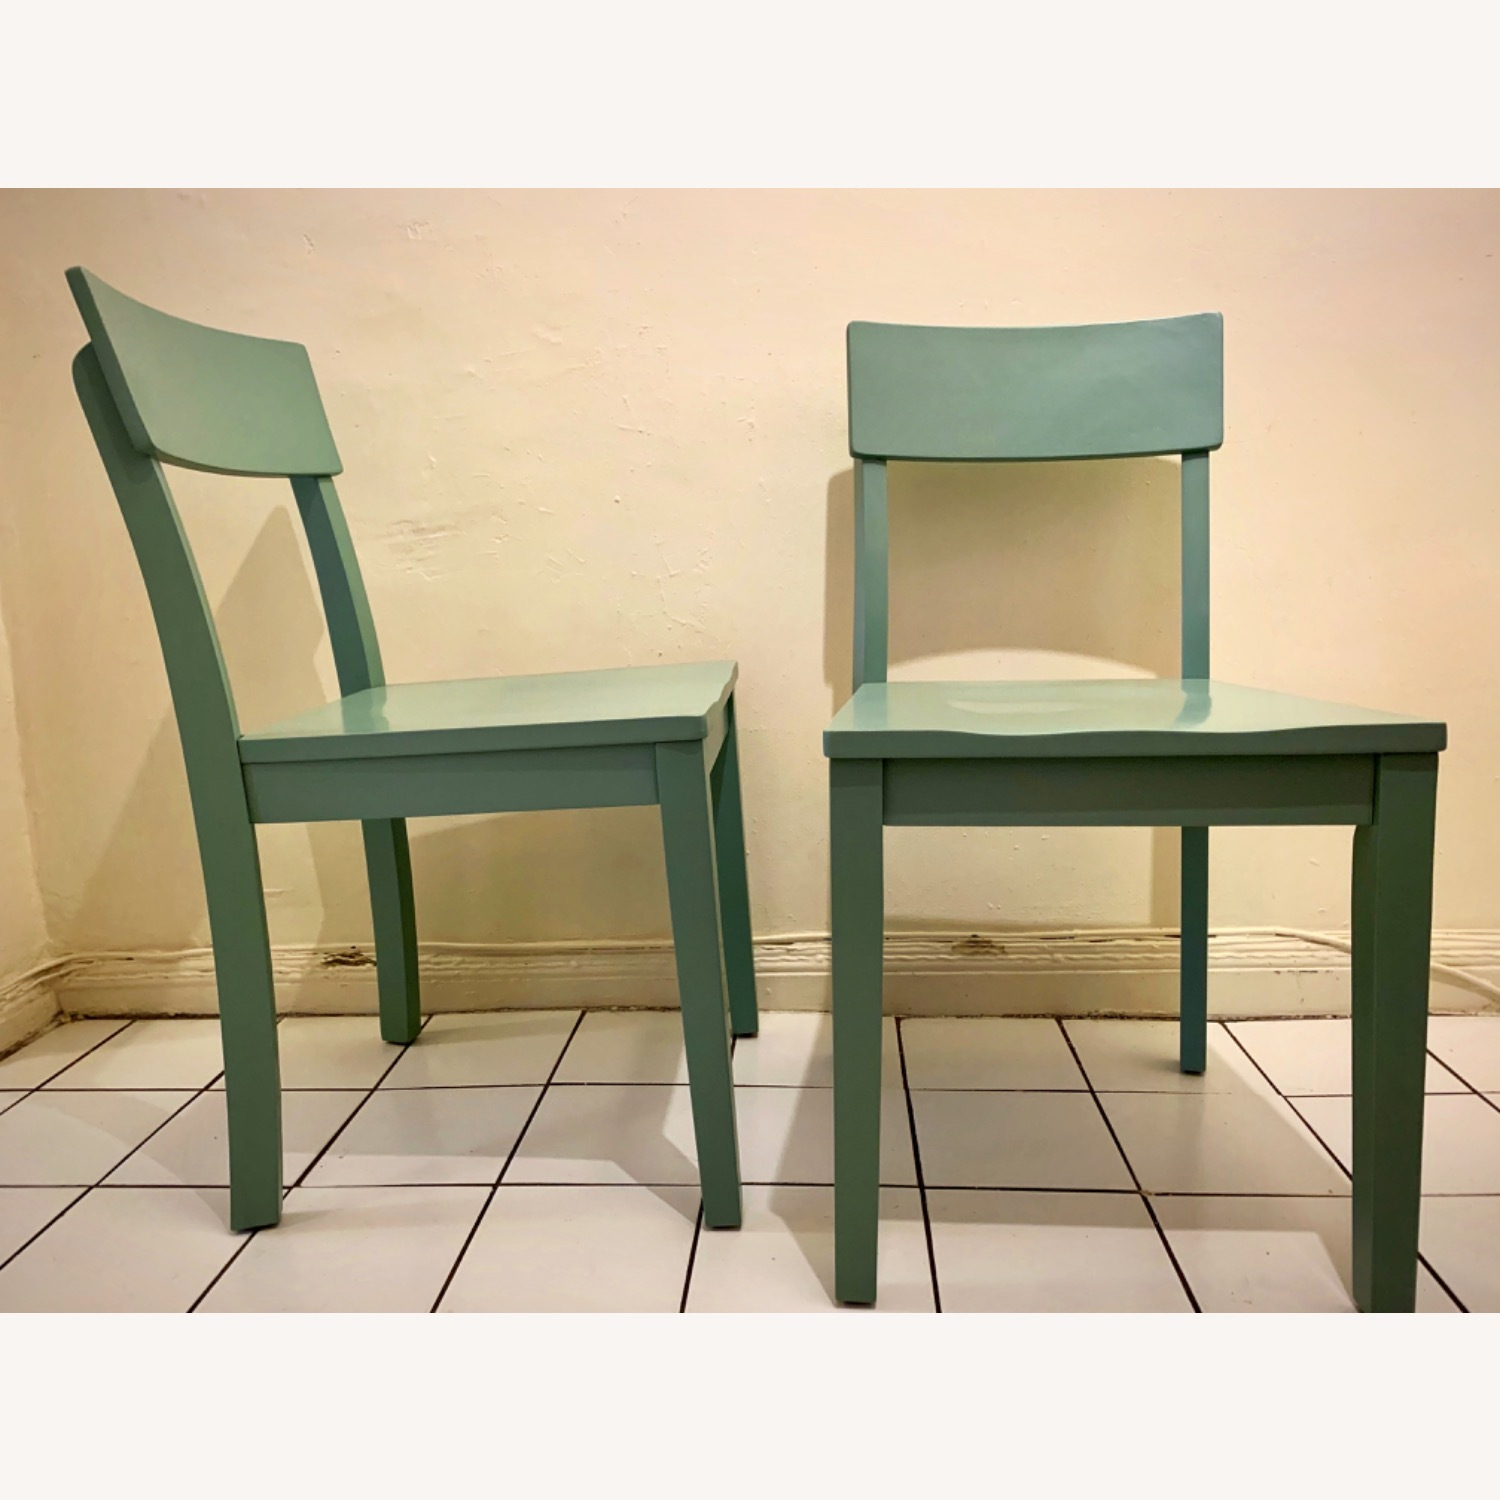 Target Armless Bethesda Modern Dining Chairs - image-2